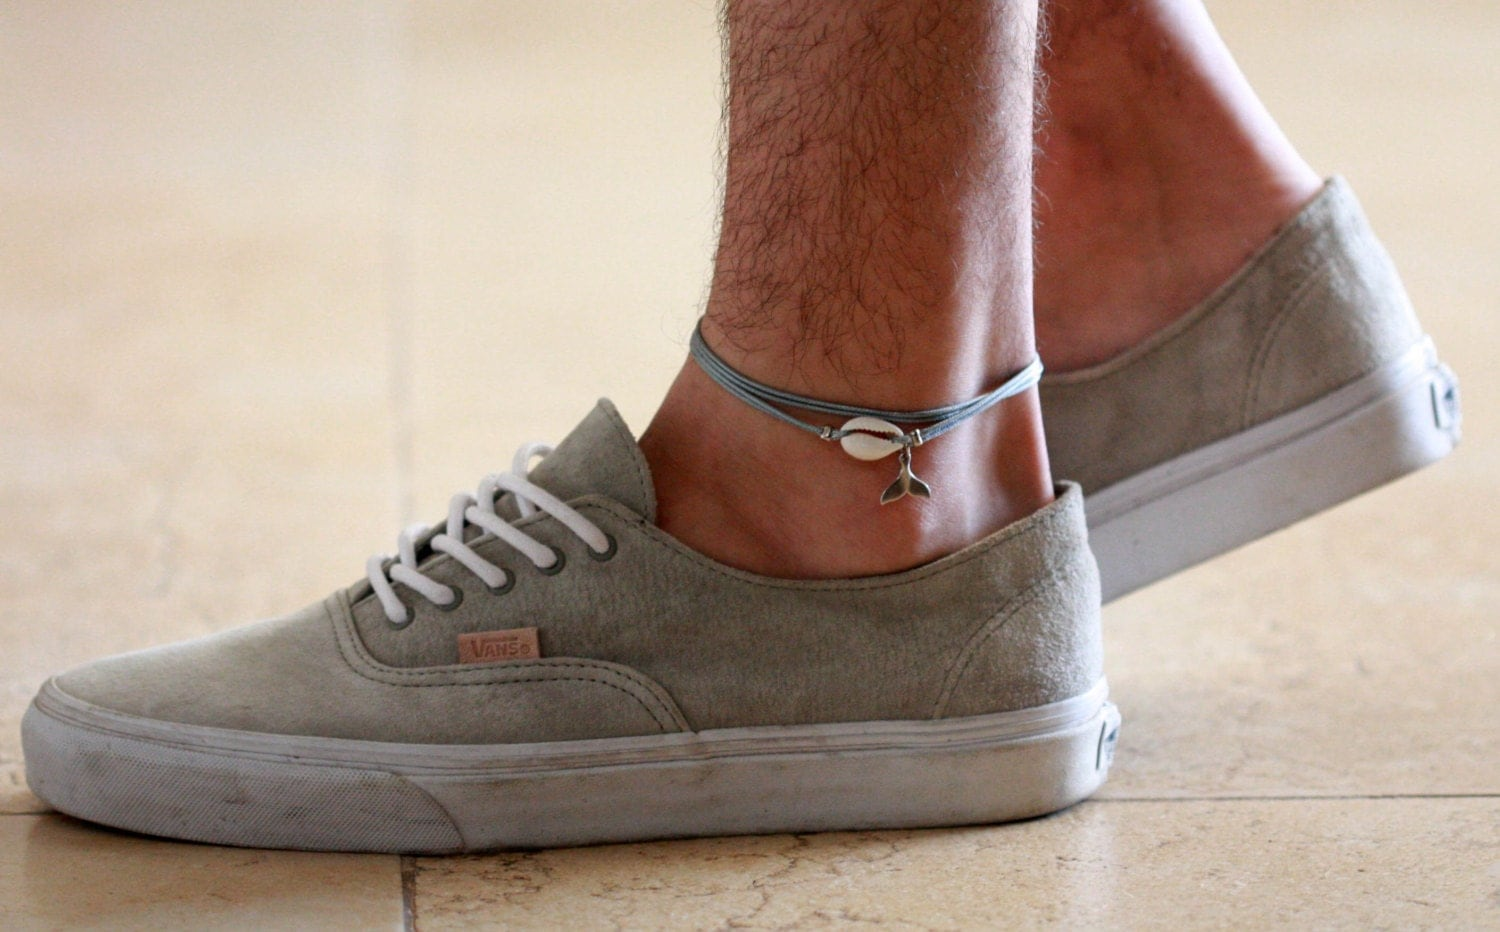 Men's Anklet Men's Ankle Bracelet Anklet For Men By Galismens. Fine Chains. Malachite Gemstone. Blue Band Watches. 14kt Gold Chains. Dinosaur Bone Necklace. Solitaire Pendant. Gold Pendant. Embroidered Brooch